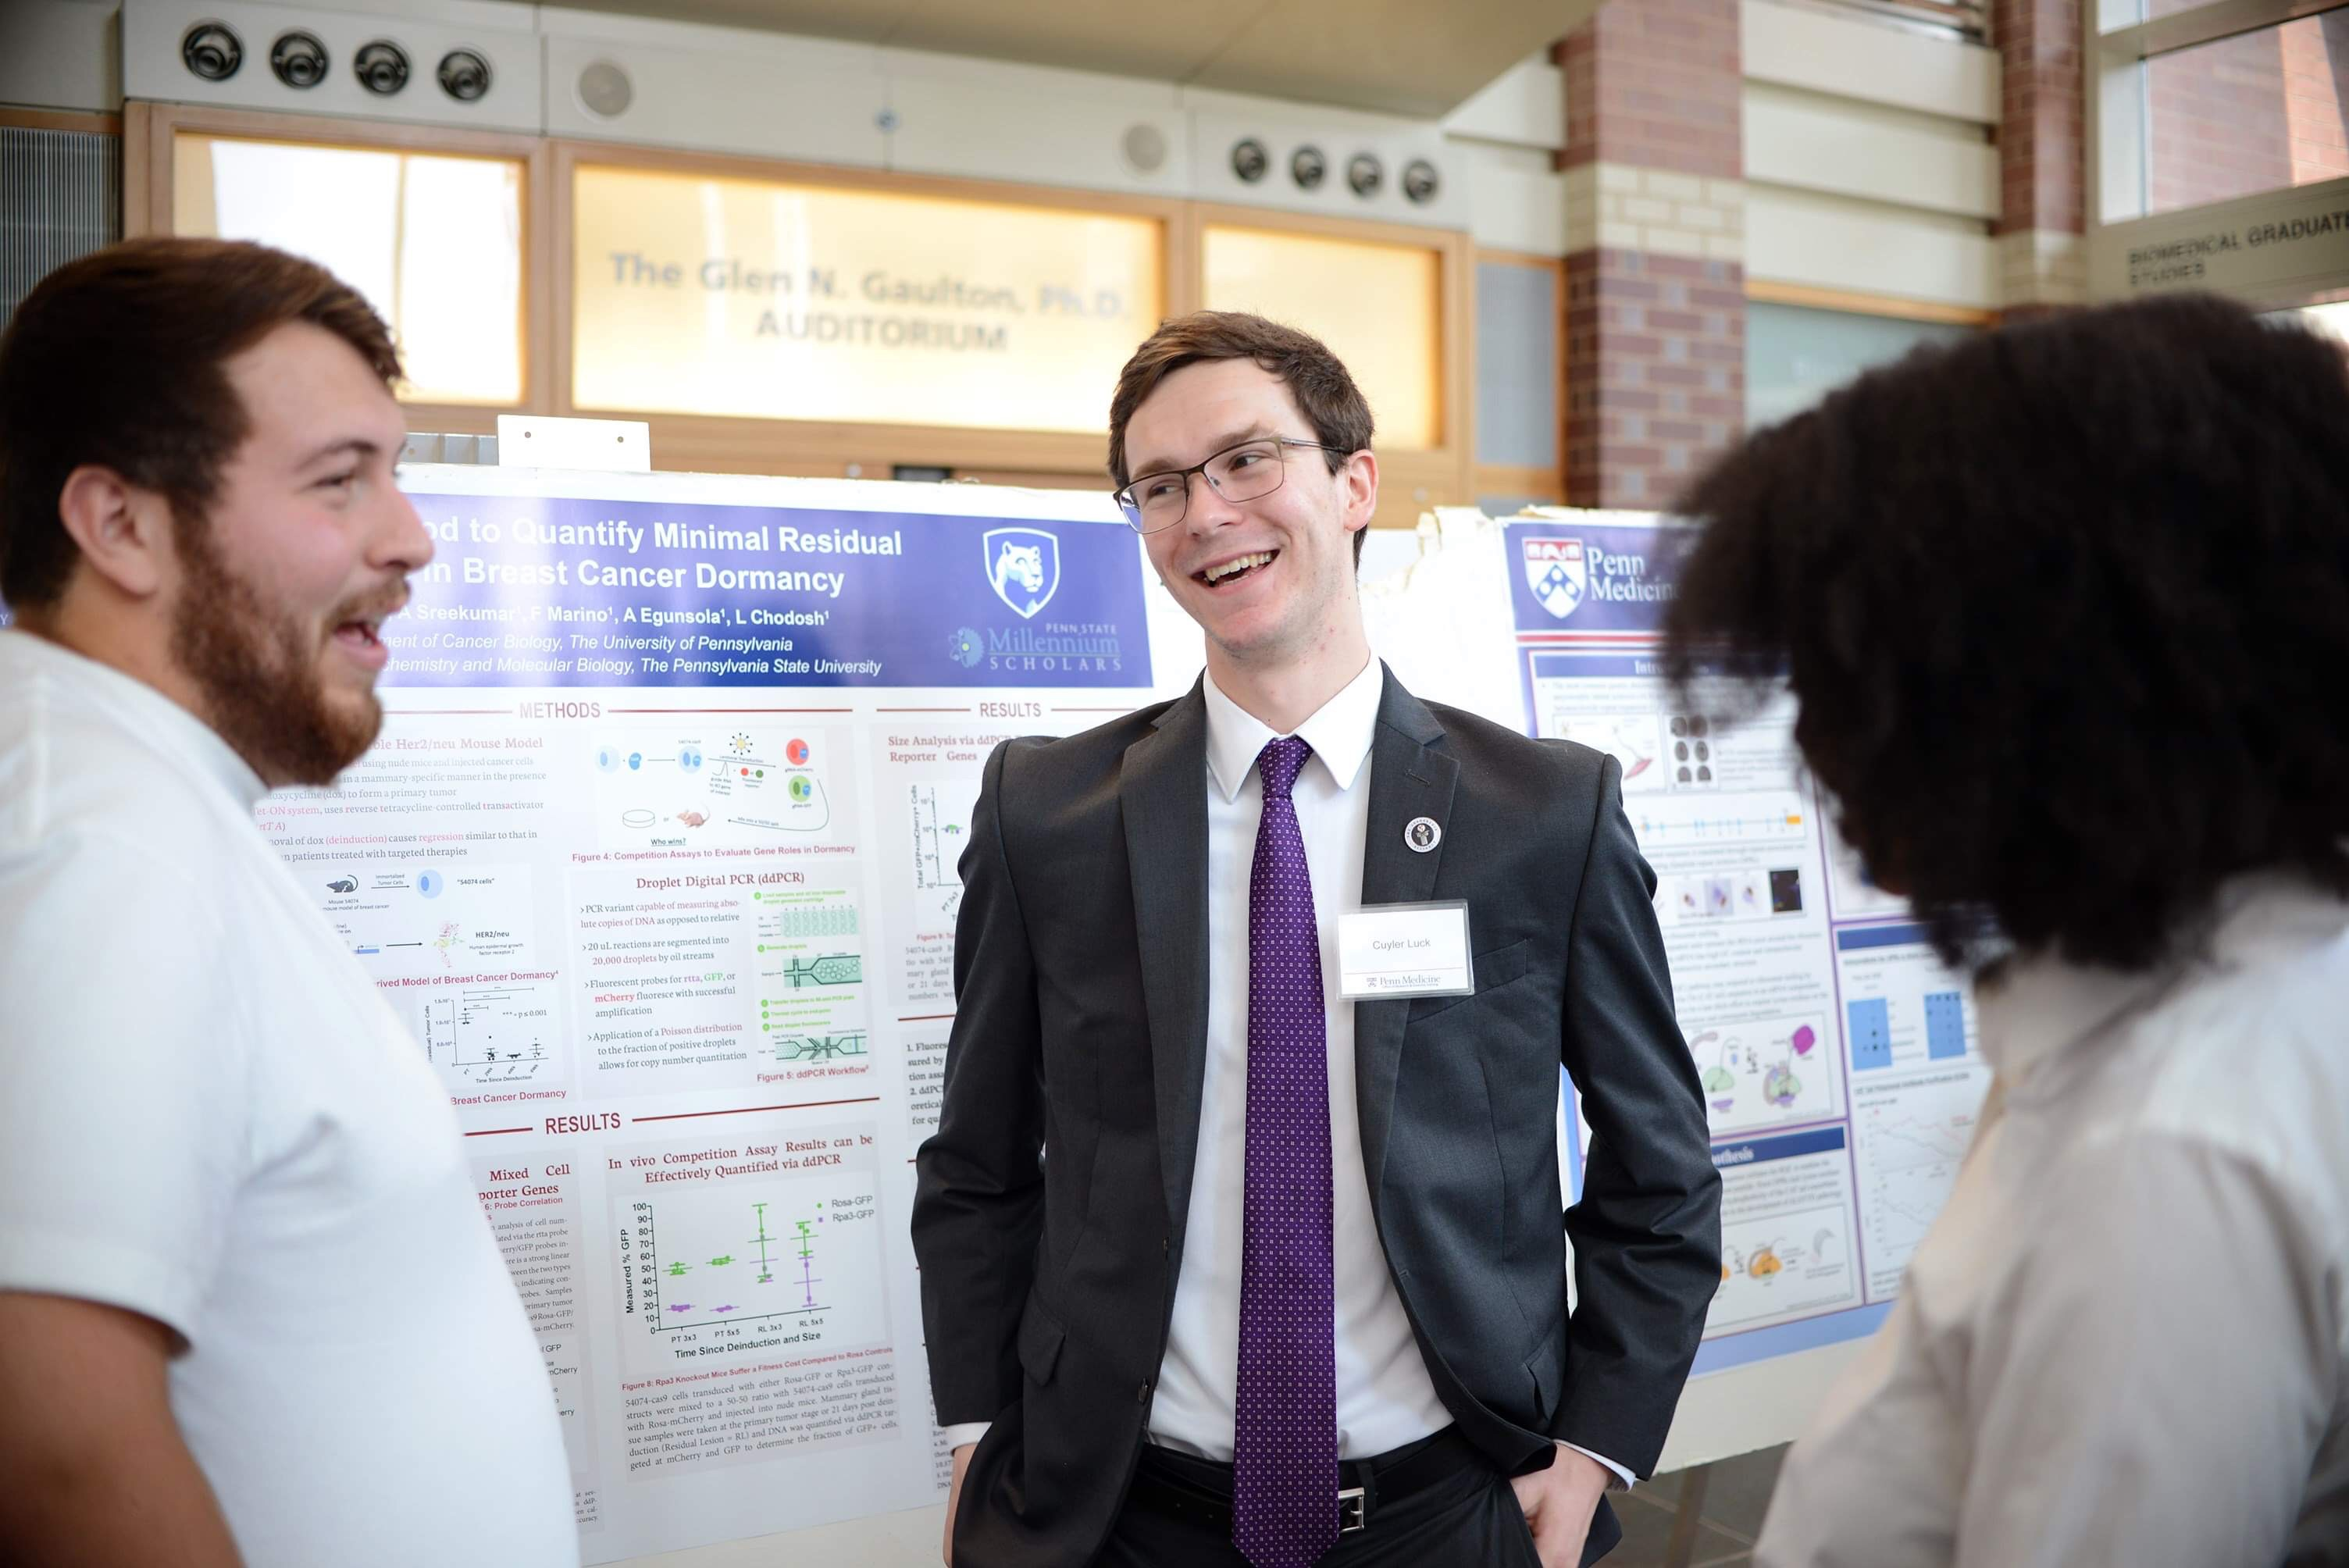 Cuyler Luck presenting his research poster at the University of Pensylvania